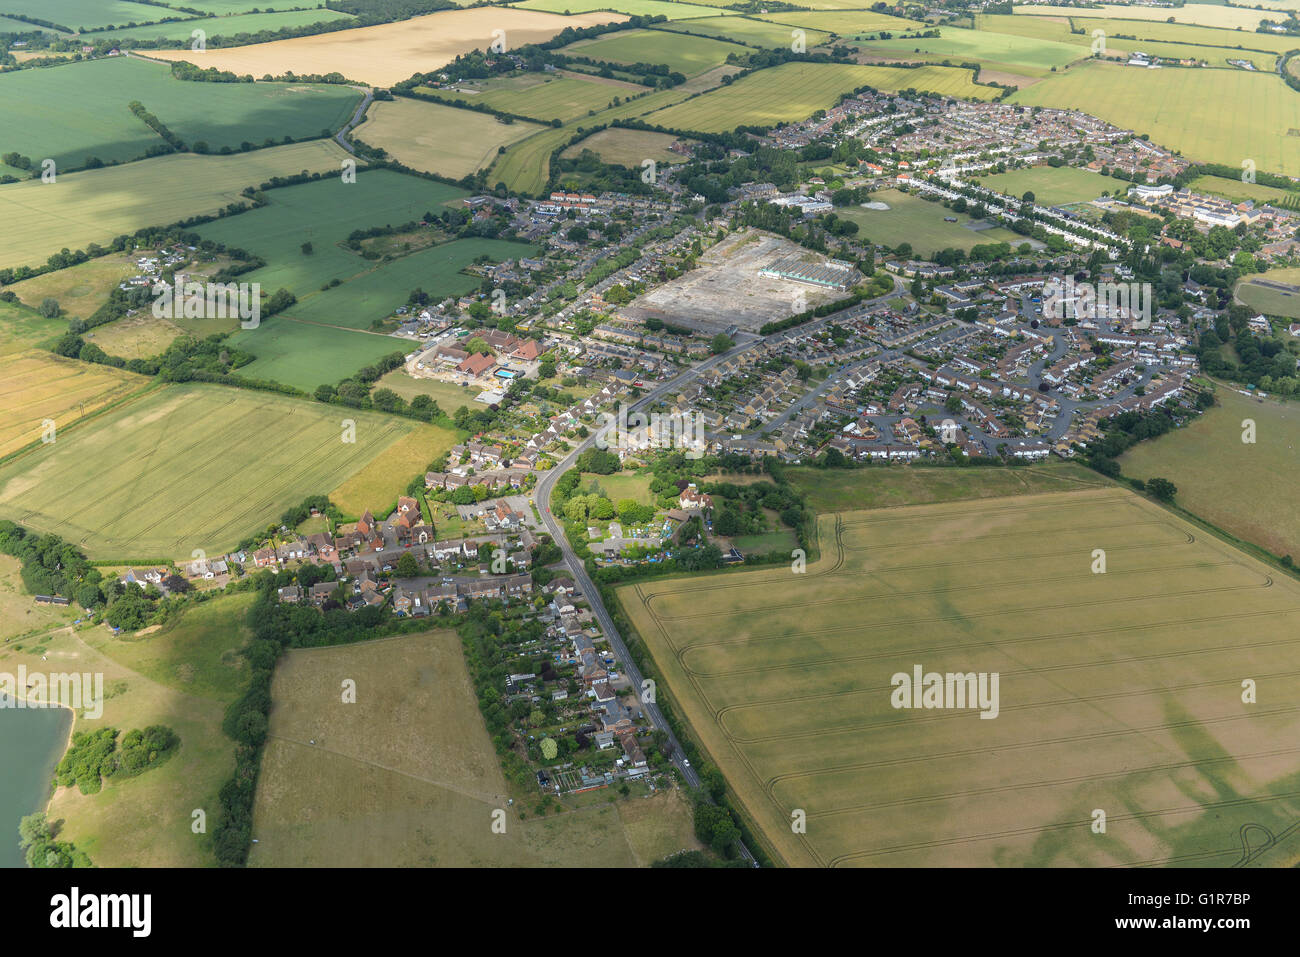 An aerial view of the village of Silver End and surrounding Essex countryside - Stock Image